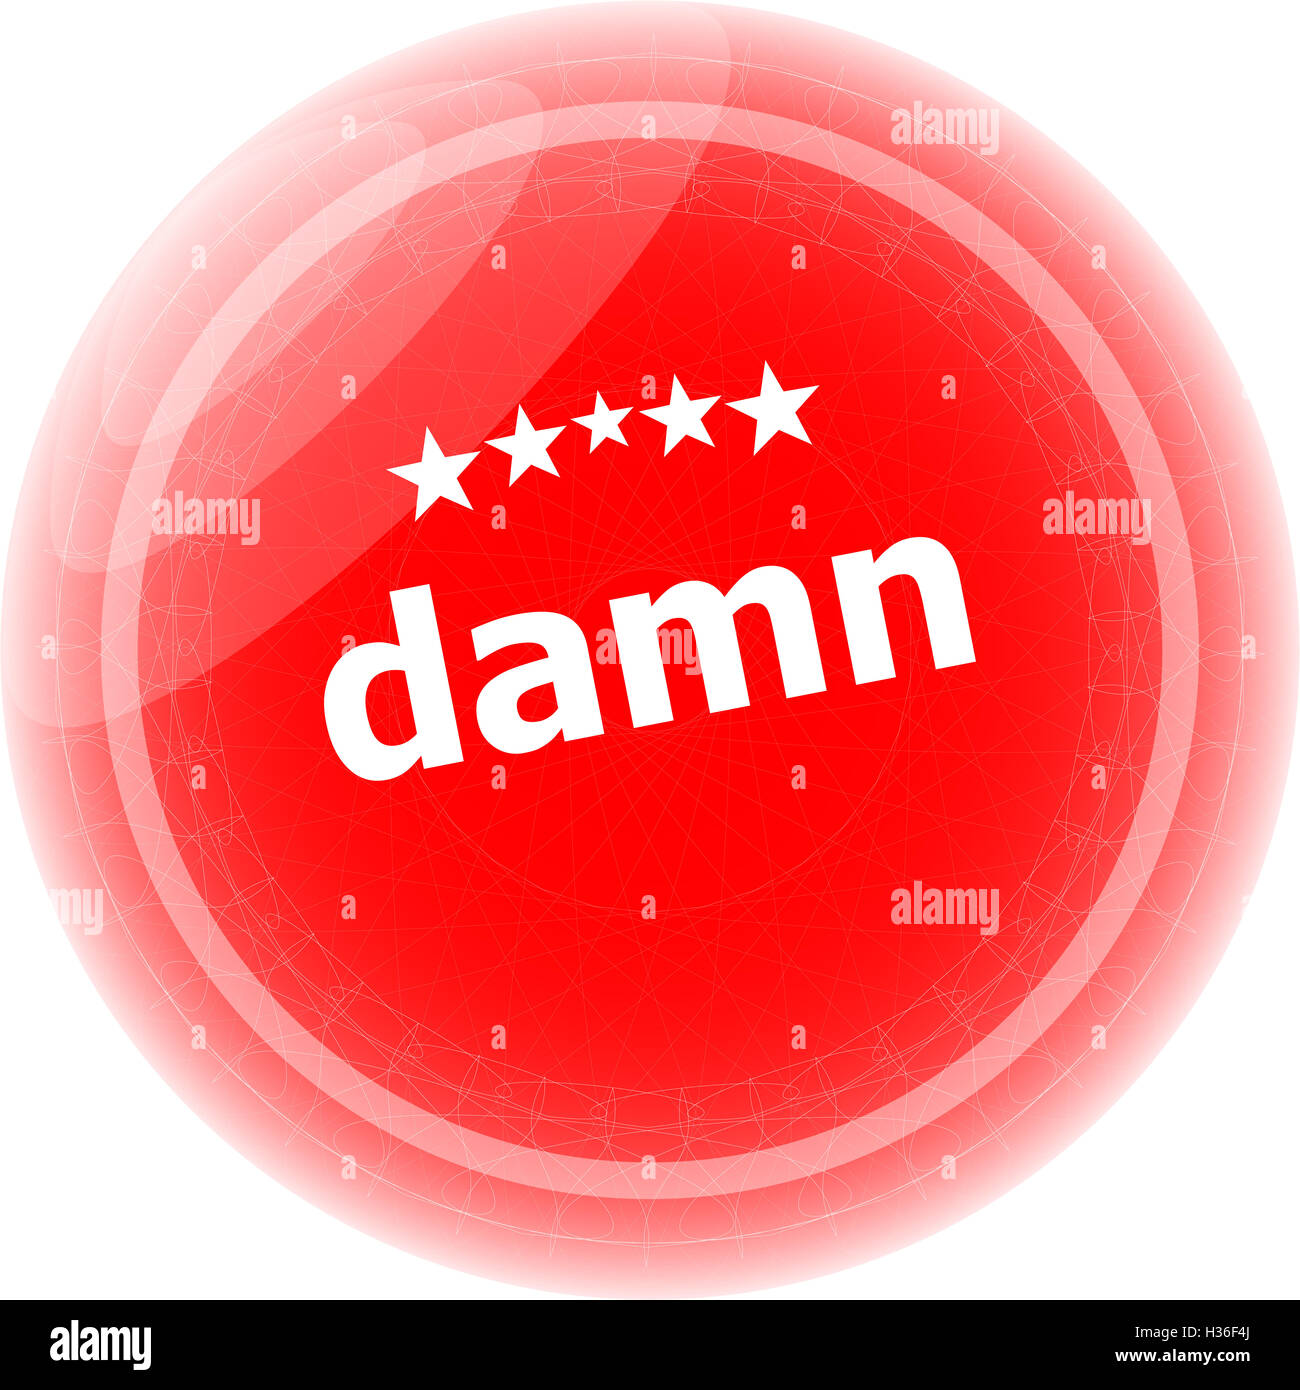 damn word on red icon button business concept - Stock Image